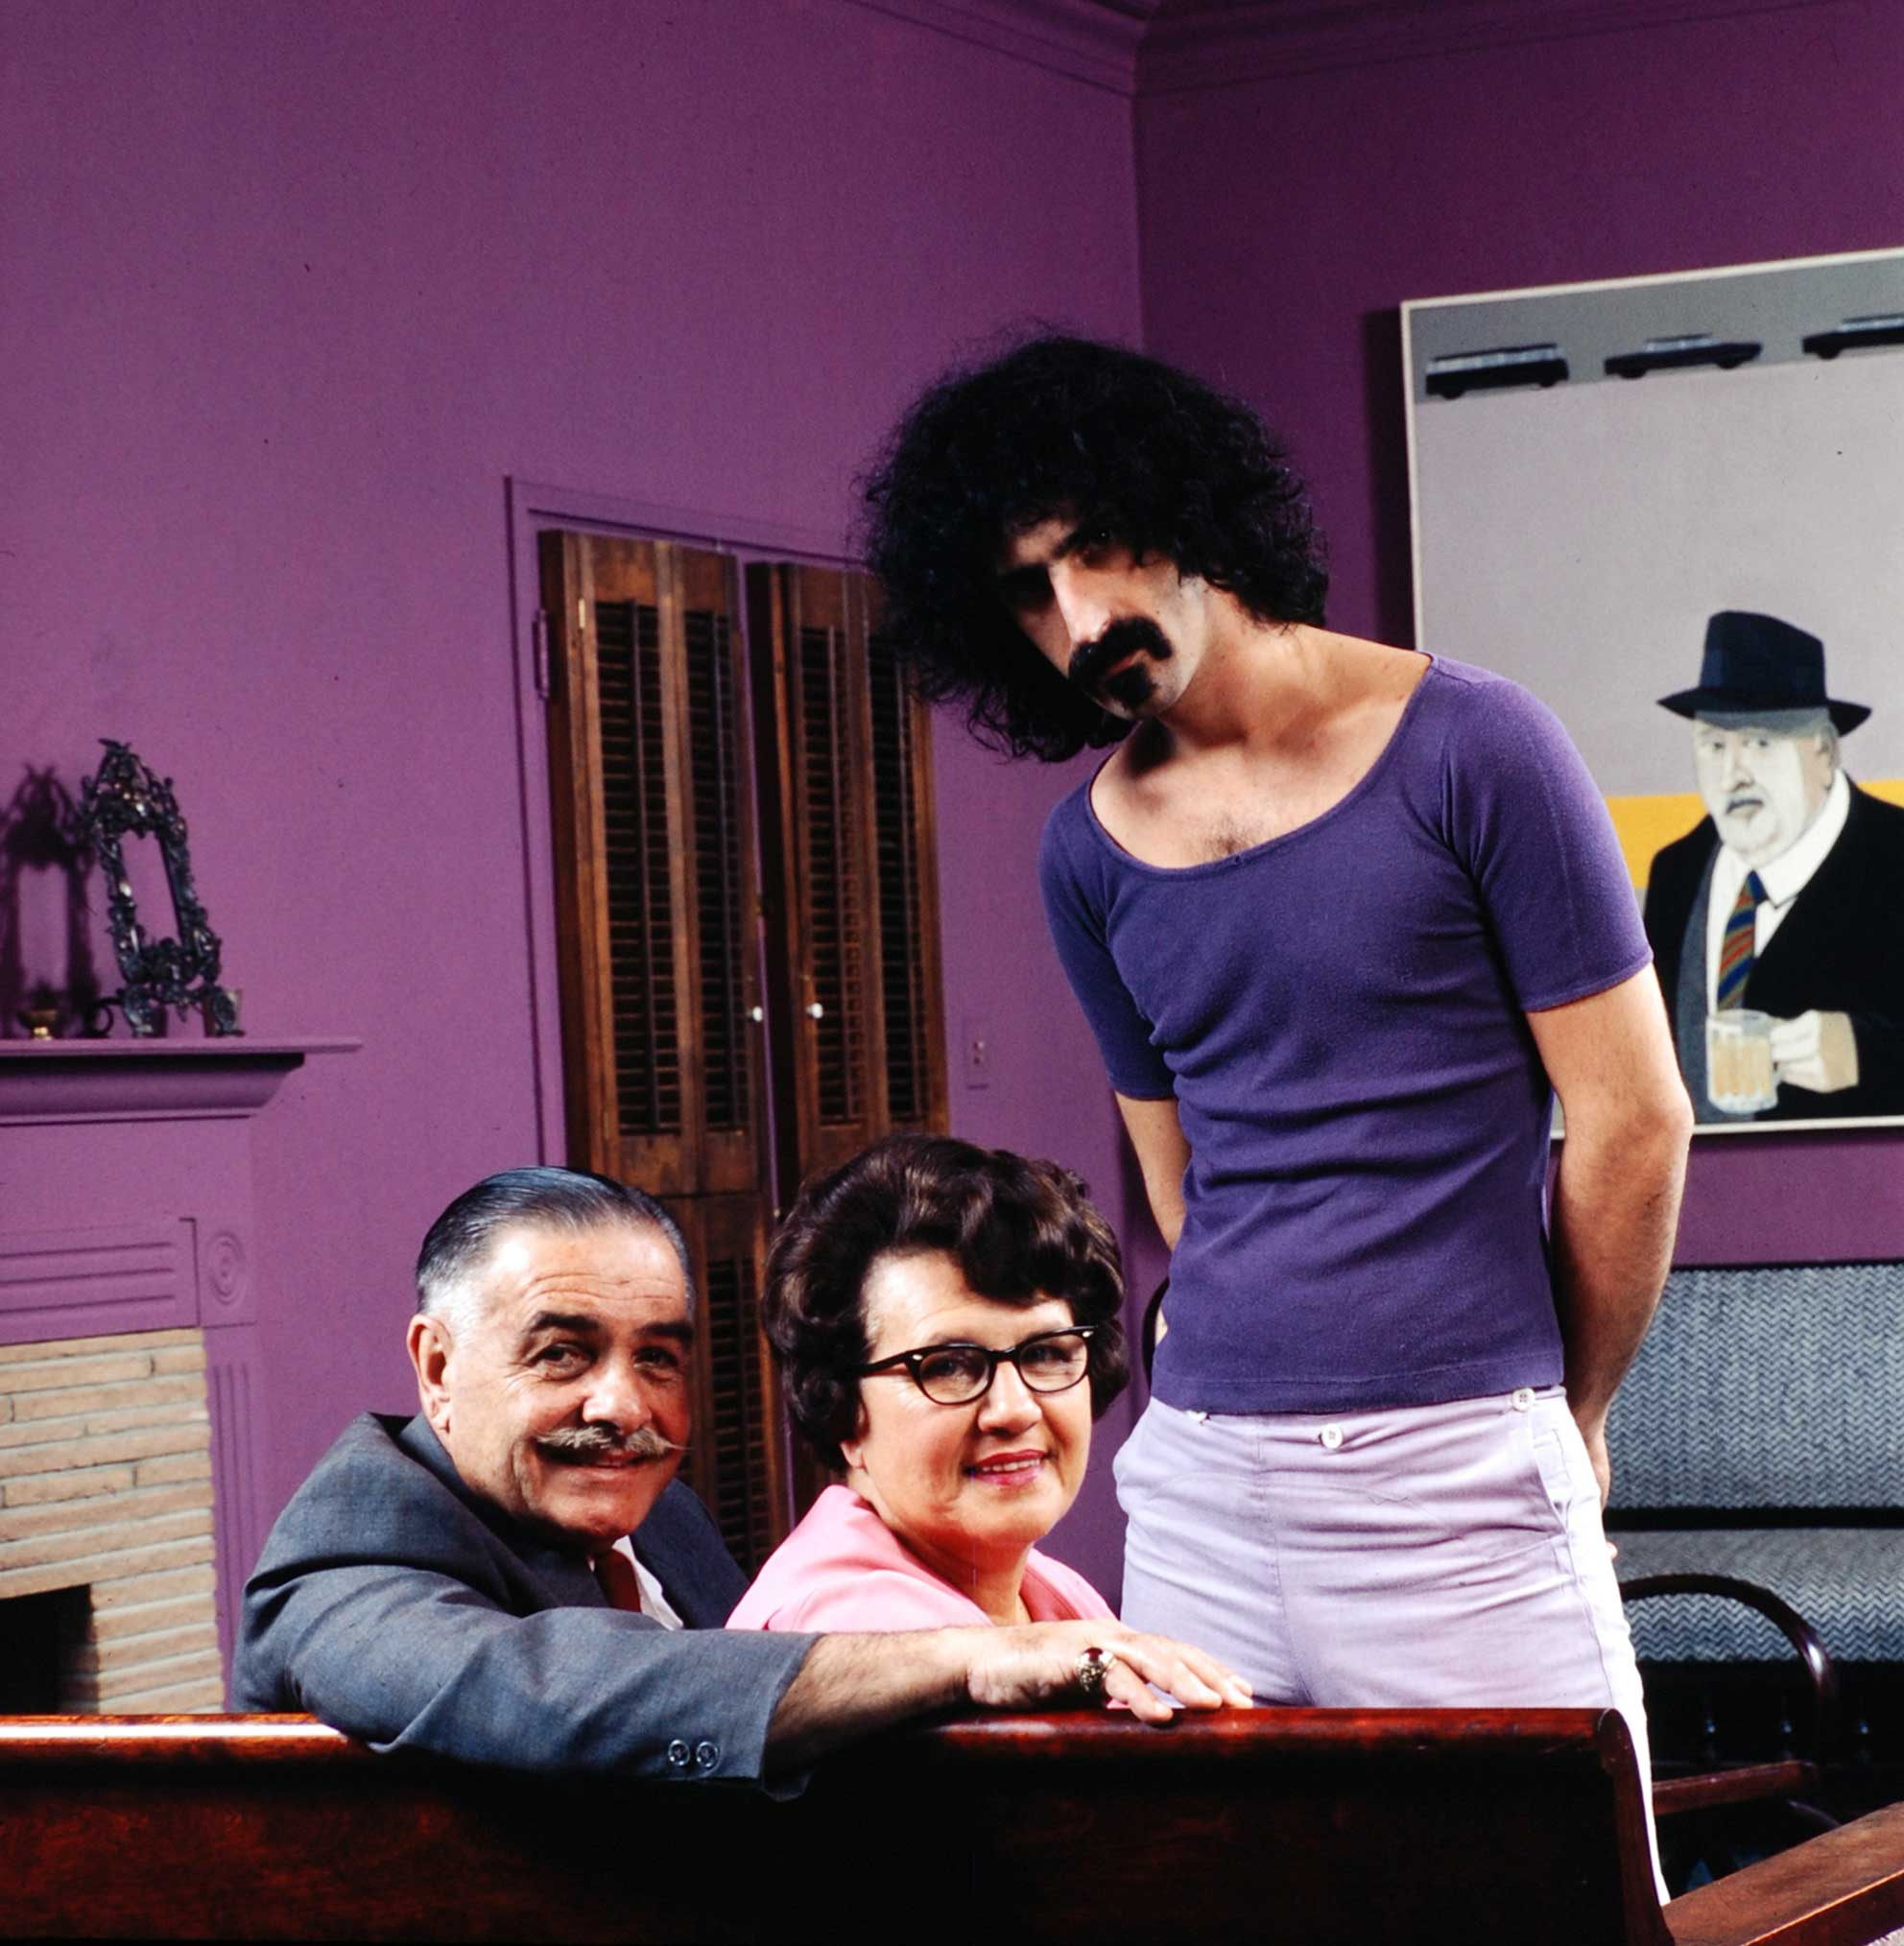 <b>Not published in LIFE.</b> Frank Zappa in his eclectic Los Angeles home with his cat, his dad, Francis and his mom, Rosemarie, in 1970.